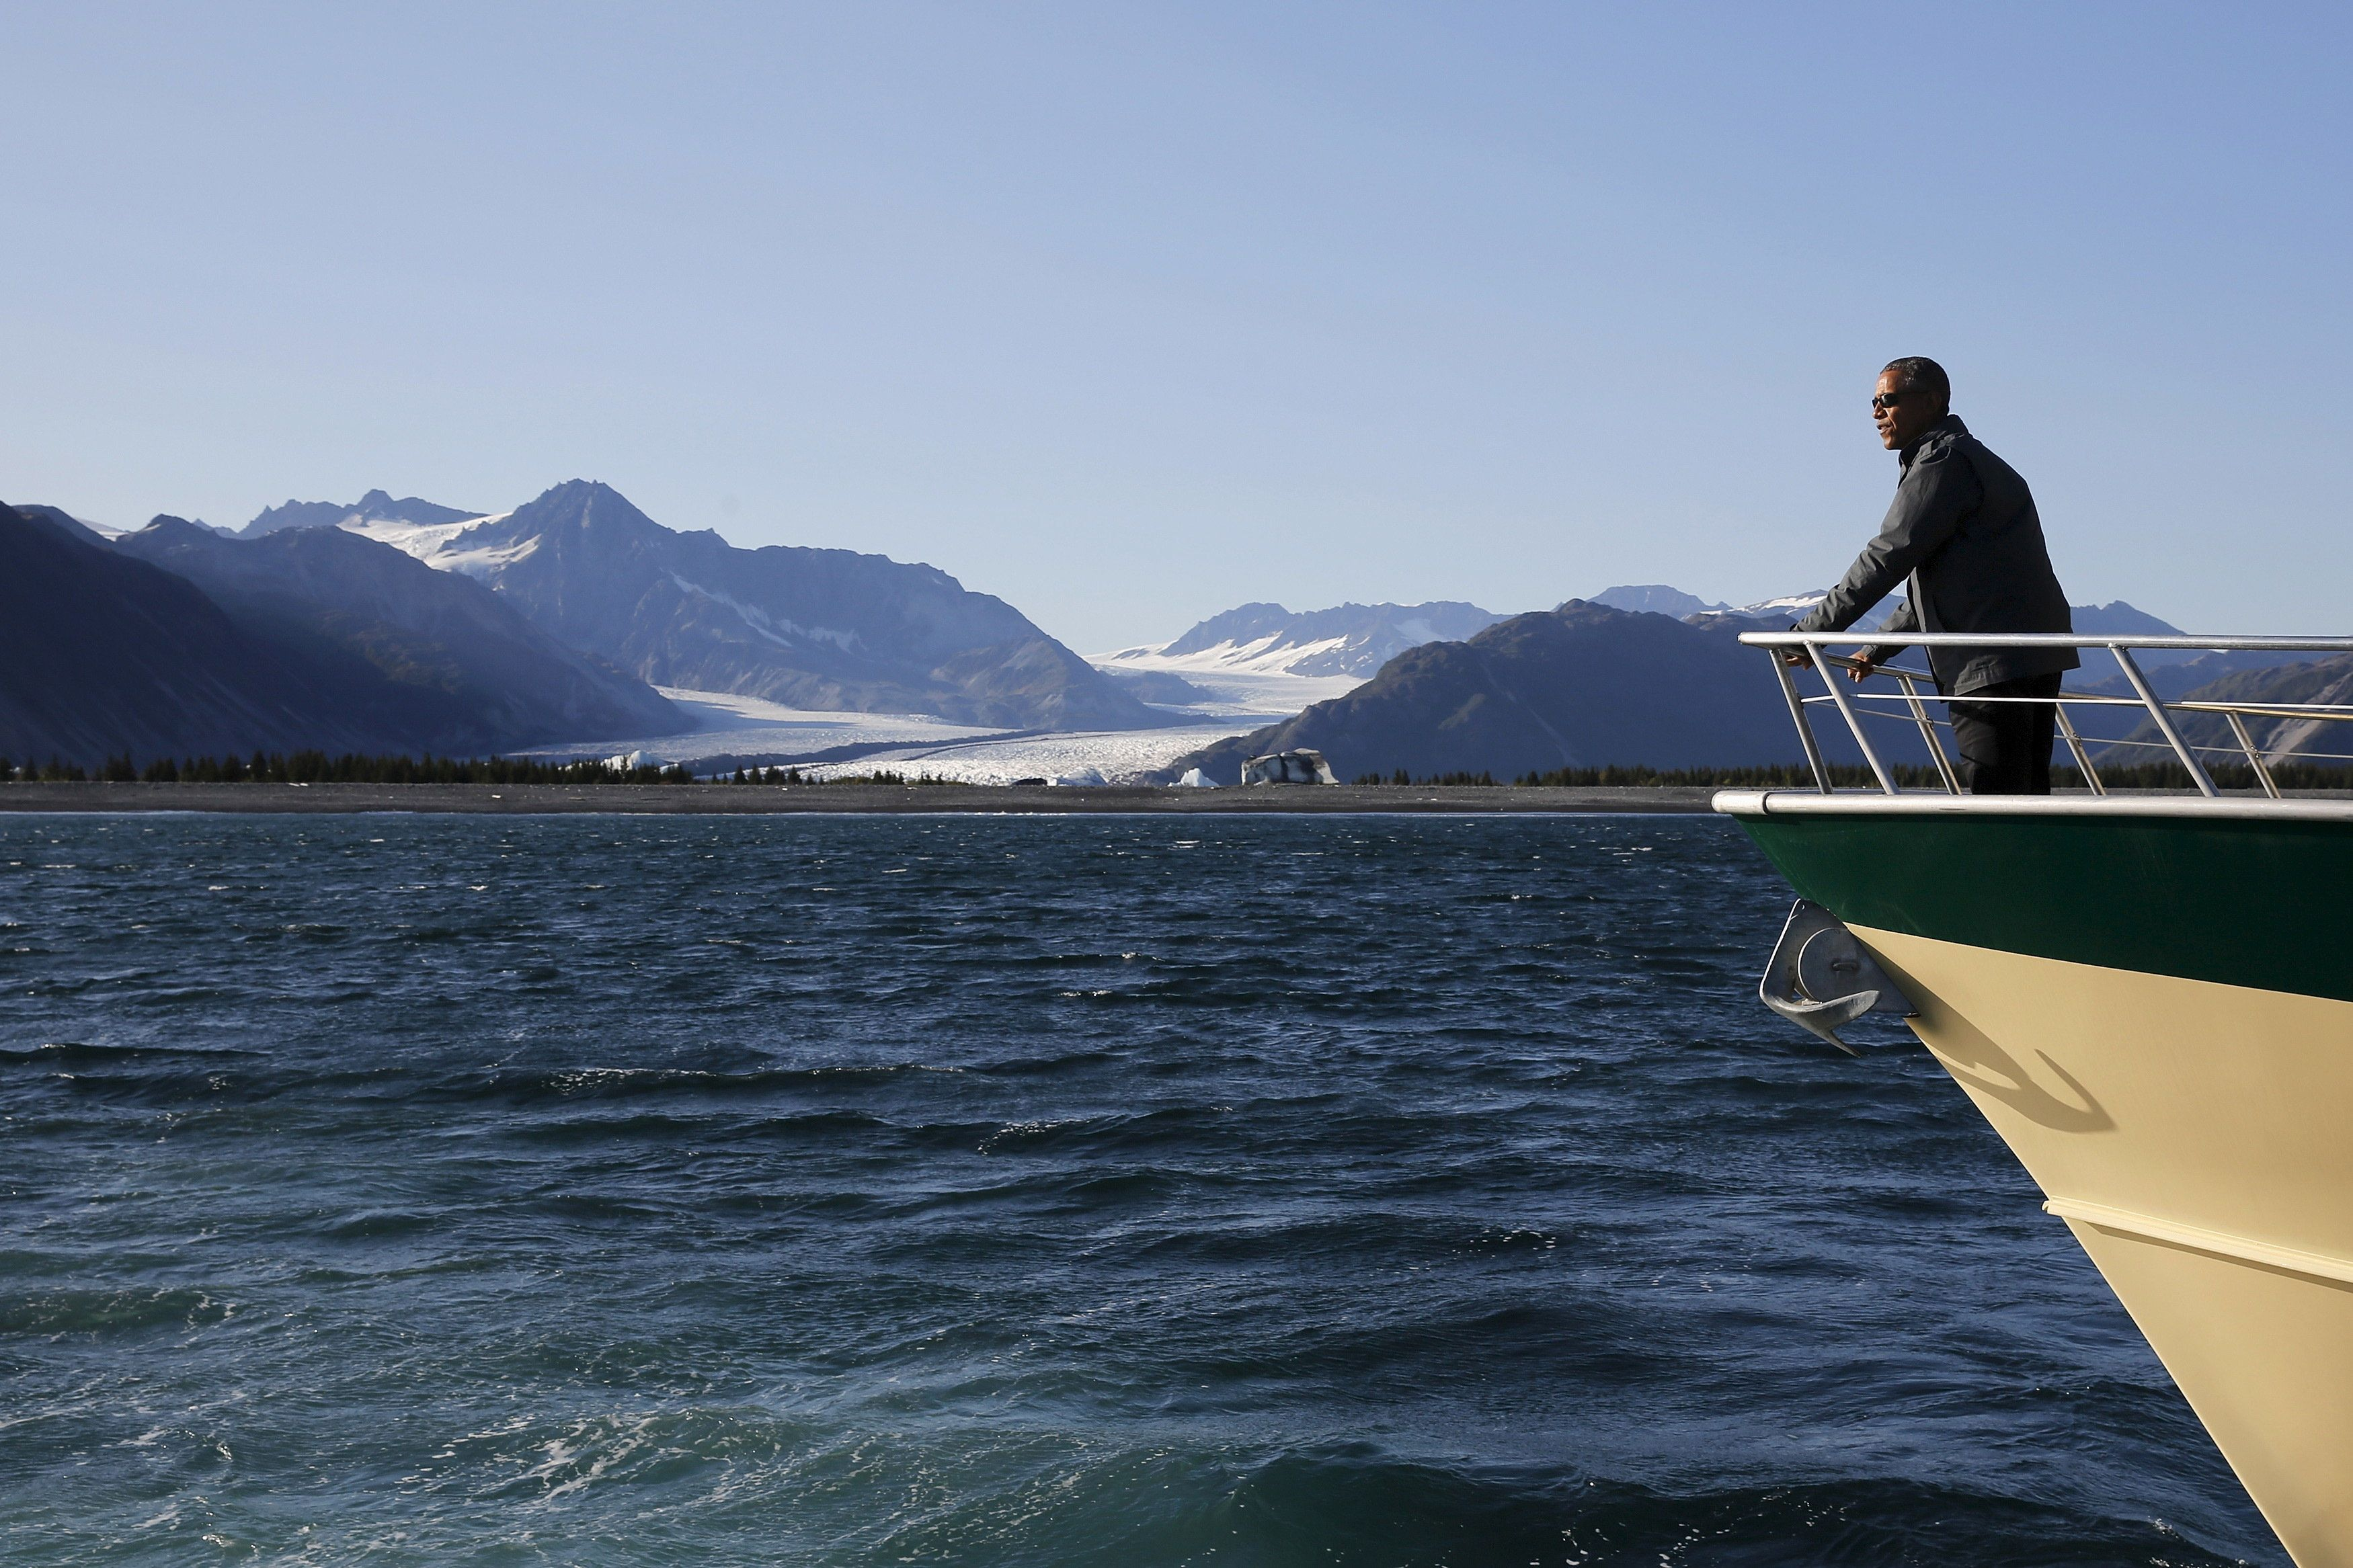 U.S. President Barack Obama views Bear Glacier on a boat tour of Kenai Fjords National Park in Seward, Alaska September 1, 2015. Obama on Tuesday proposed a faster timetable for buying a new heavy icebreaker for the U.S. Arctic, where quickly melting sea ice has spurred more maritime traffic and the United States has fallen far behind Russian resources. REUTERS/Jonathan Ernst